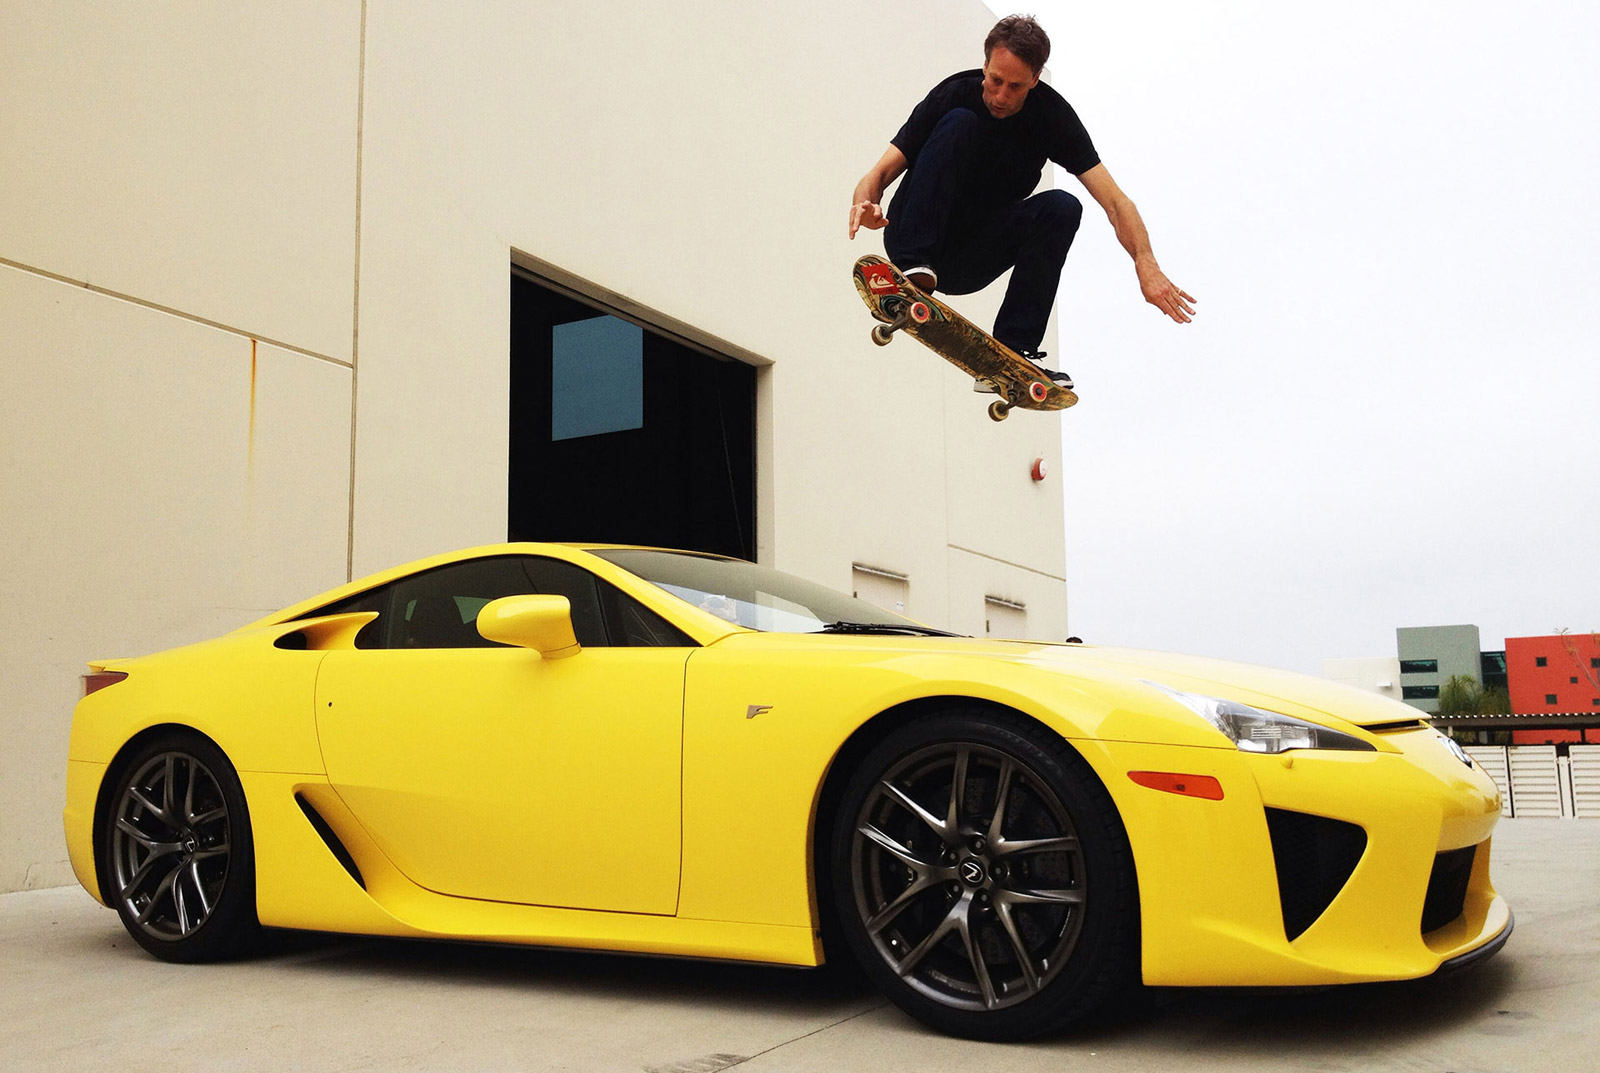 Lexus Fan Tony Hawk Uses Skateboard To Jump Over LFA: Video